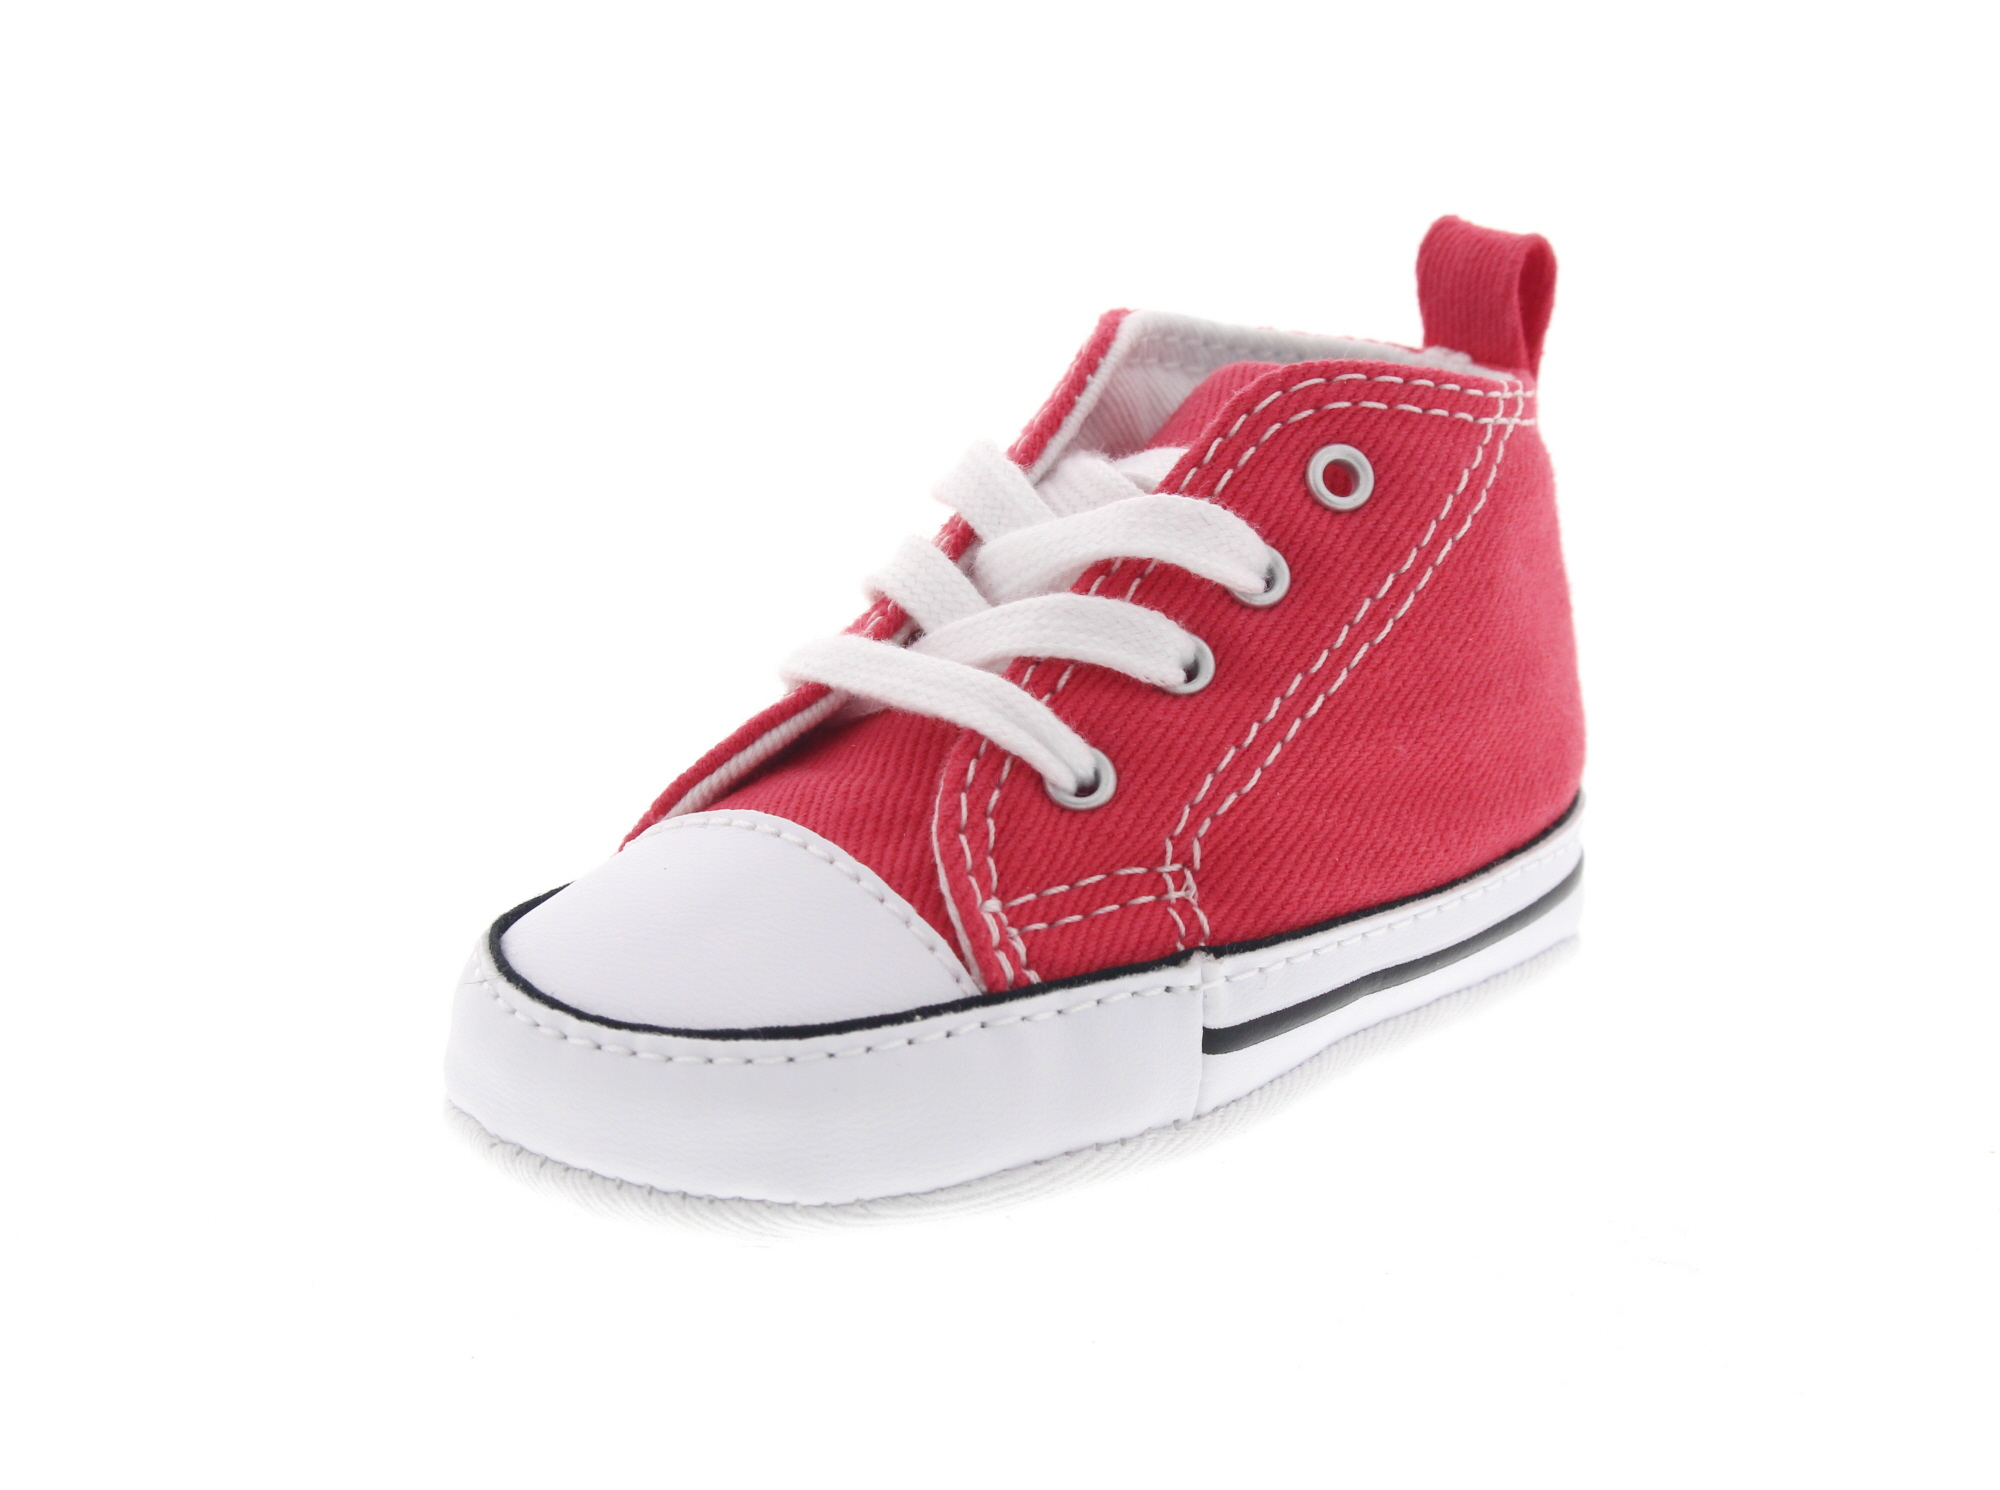 CONVERSE Kinderschuhe - FIRST STAR HI 88875 - red-0